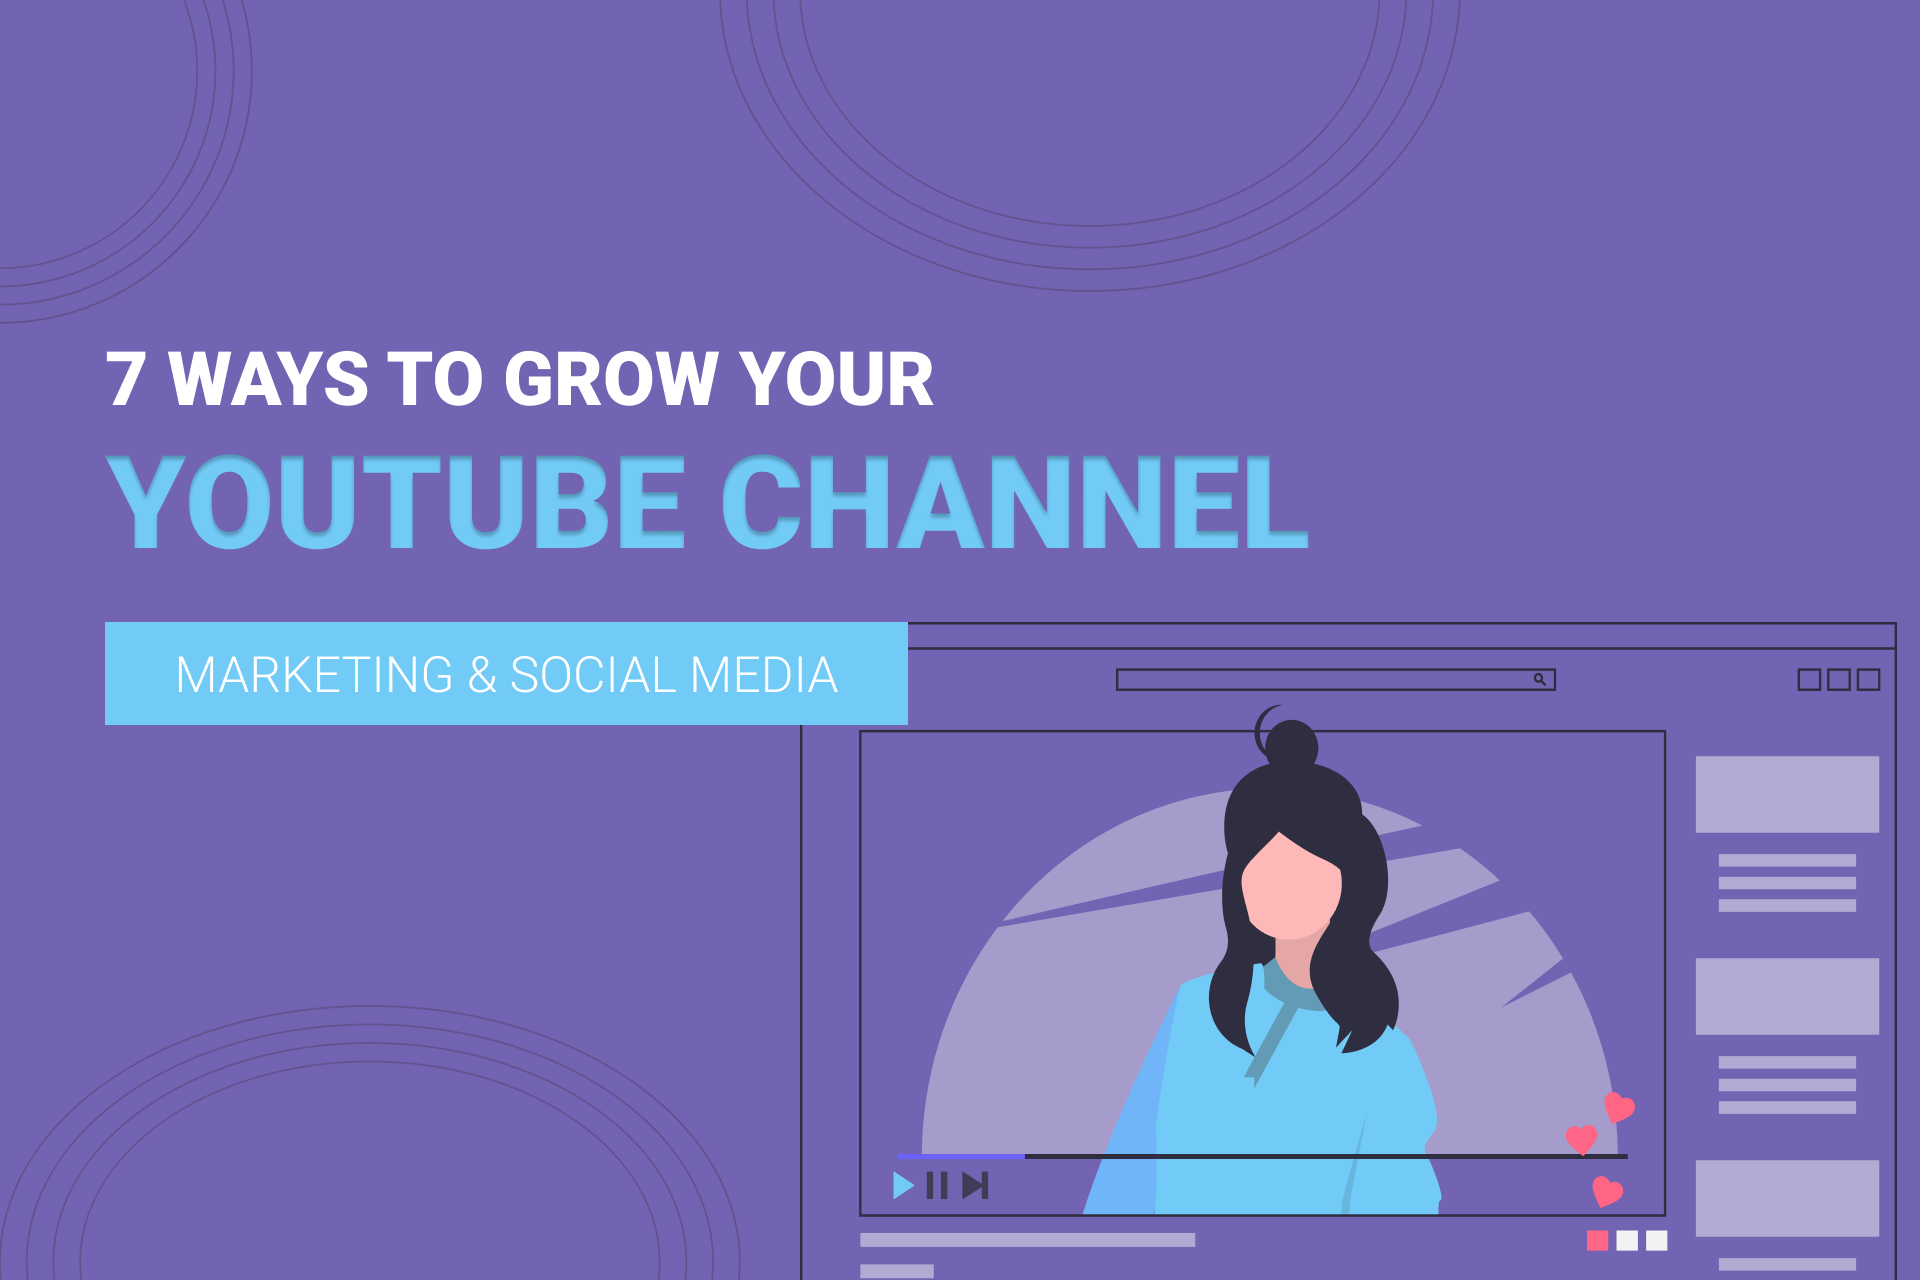 7 Ways To Grow Your YouTube Channel